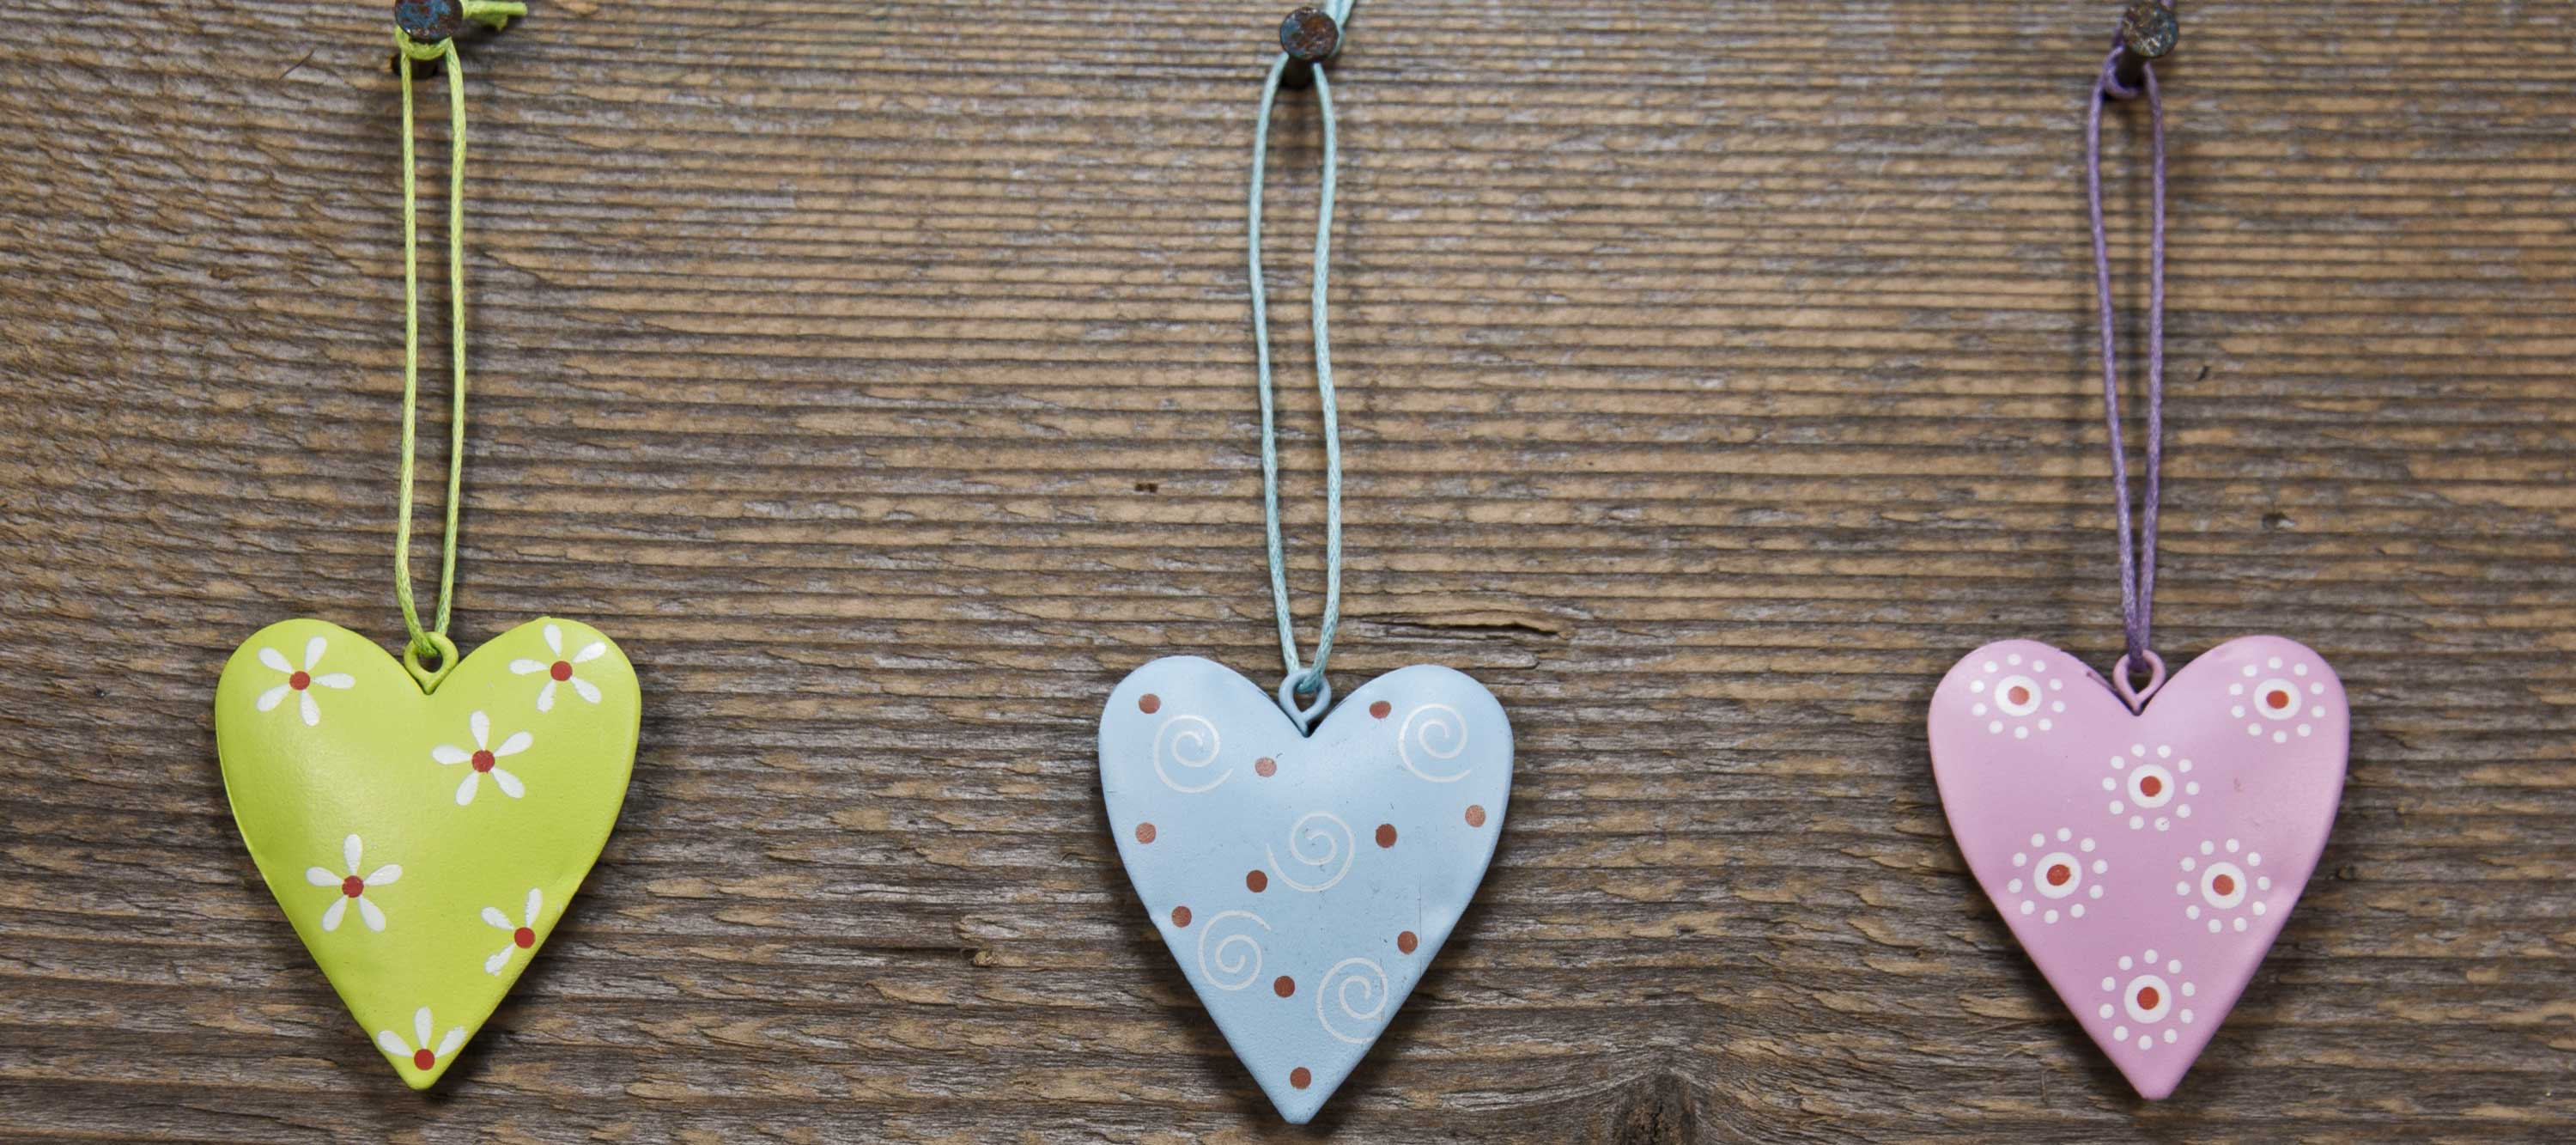 heart-sustainer-donor-featured-image